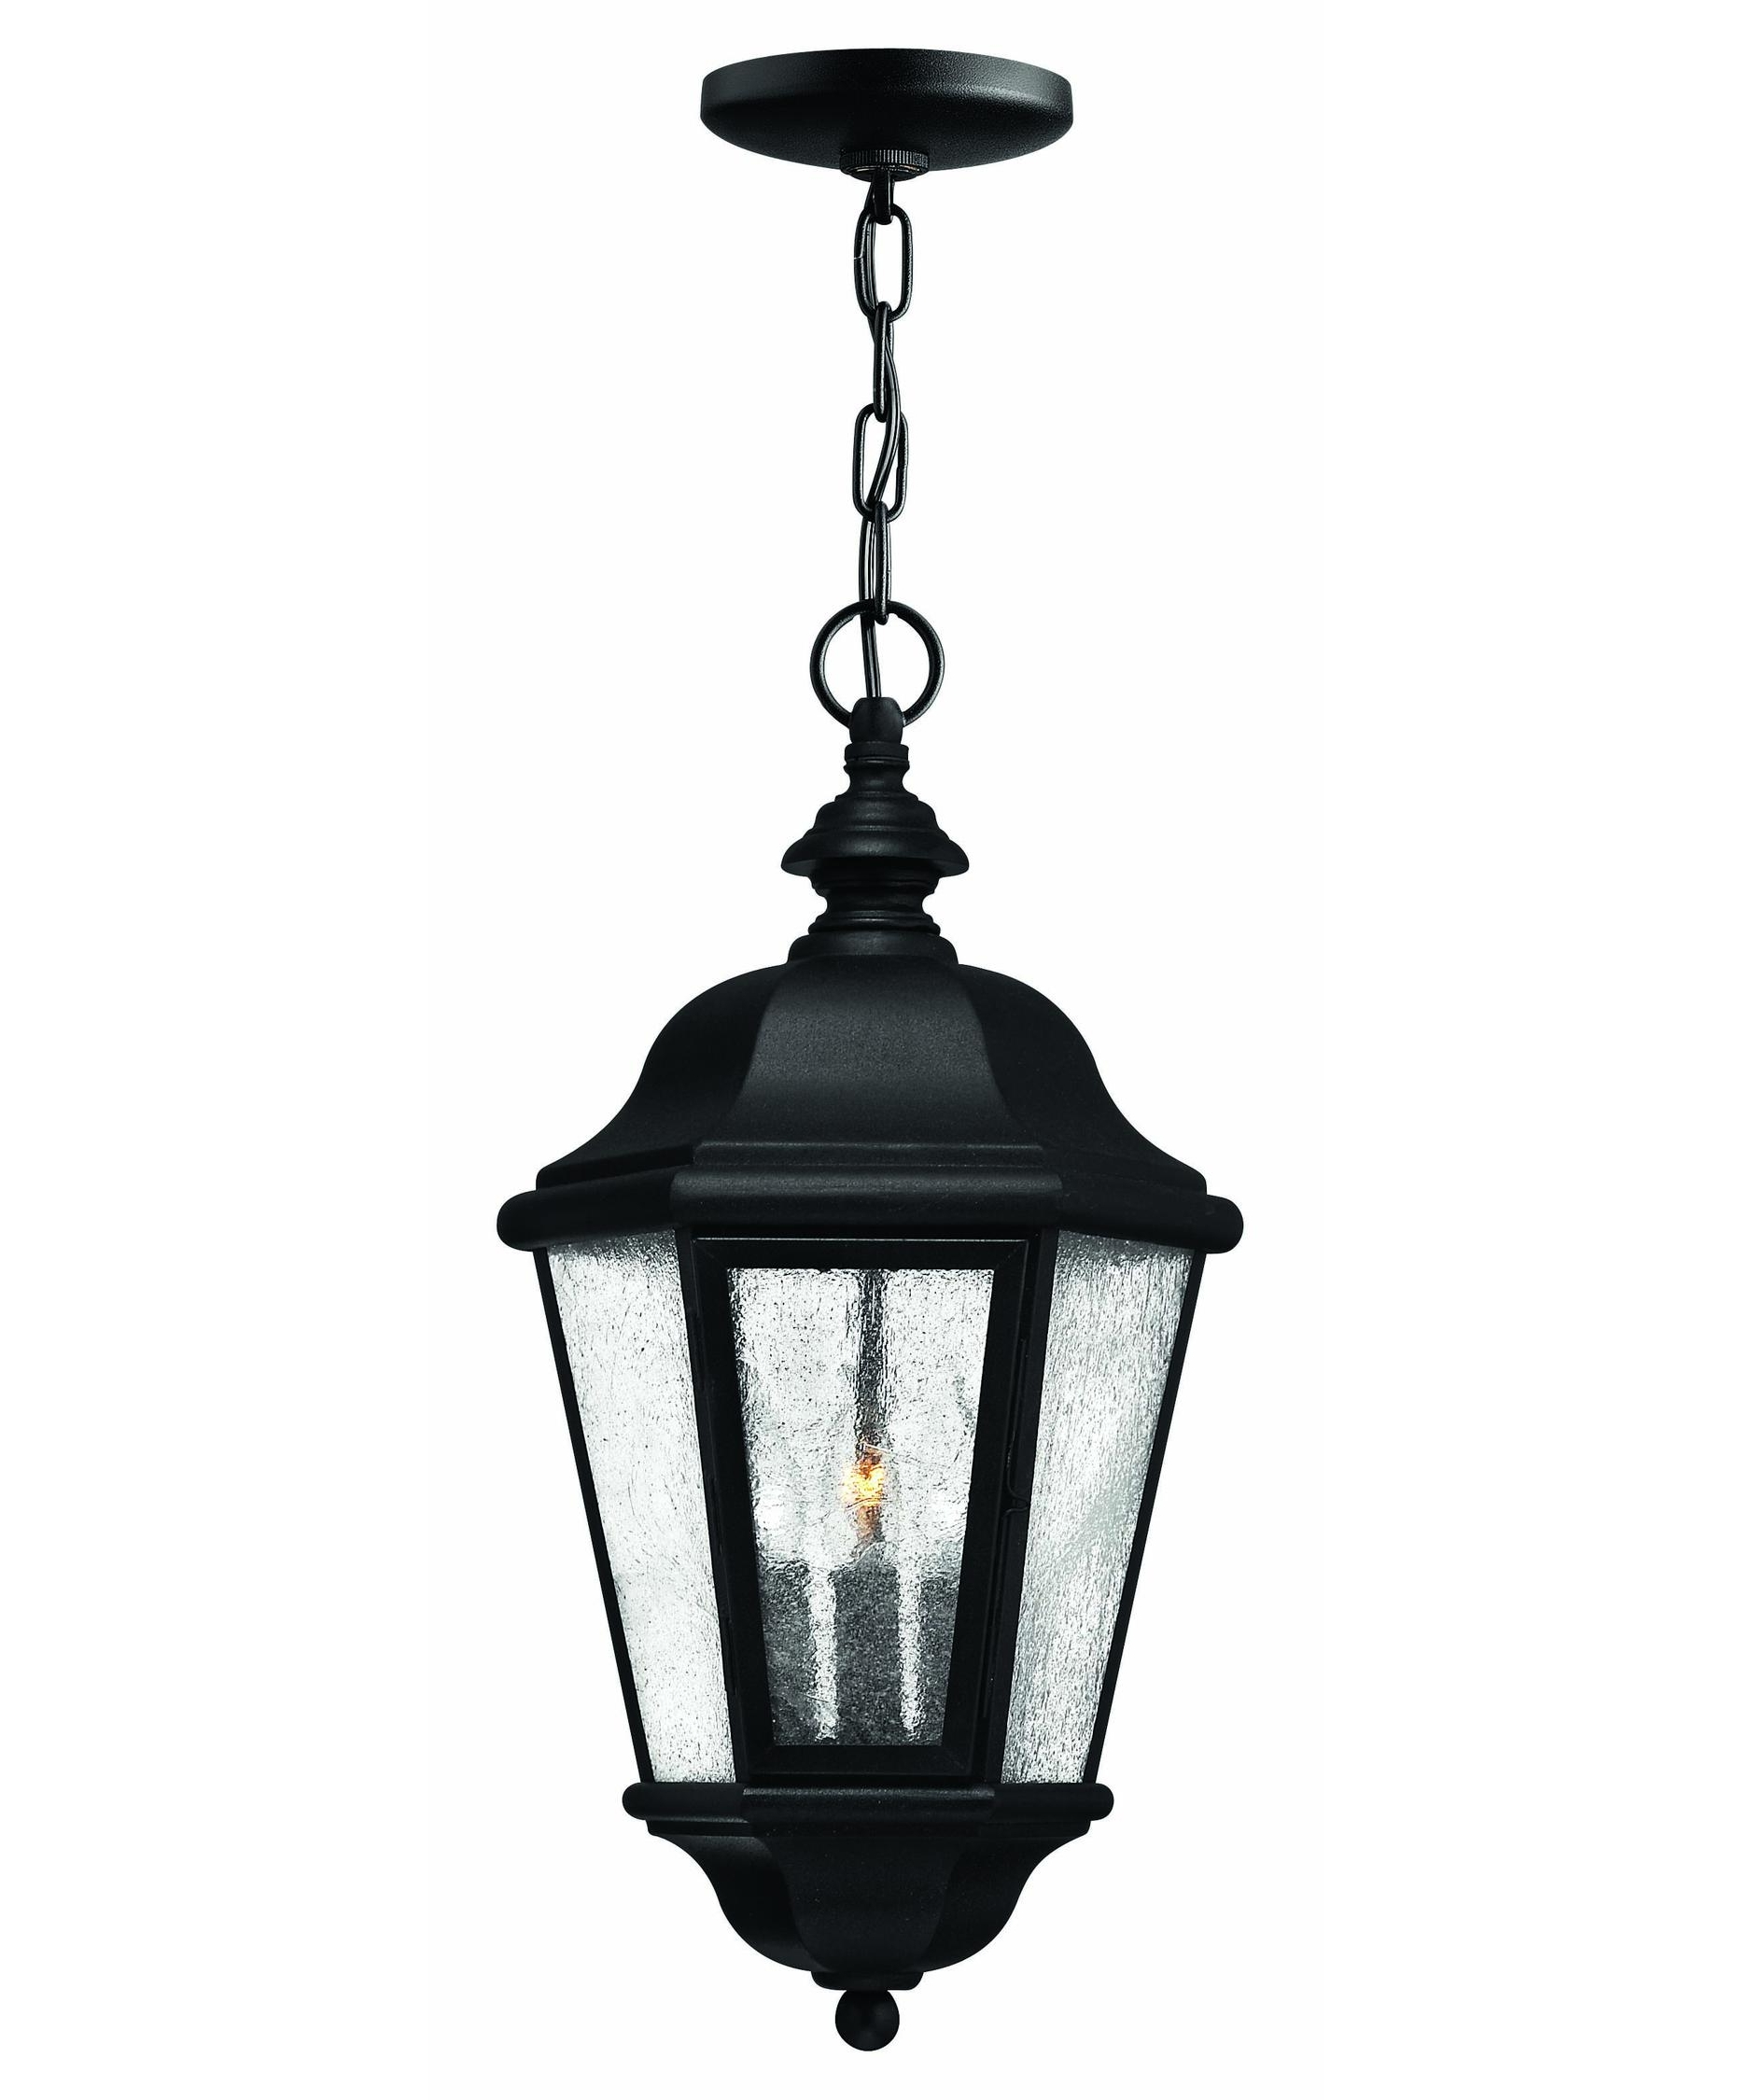 Outdoor Hanging Light Fixtures In Black Pertaining To Popular Hinkley Lighting 1672 Edgewater 10 Inch Wide 3 Light Outdoor Hanging (View 2 of 20)